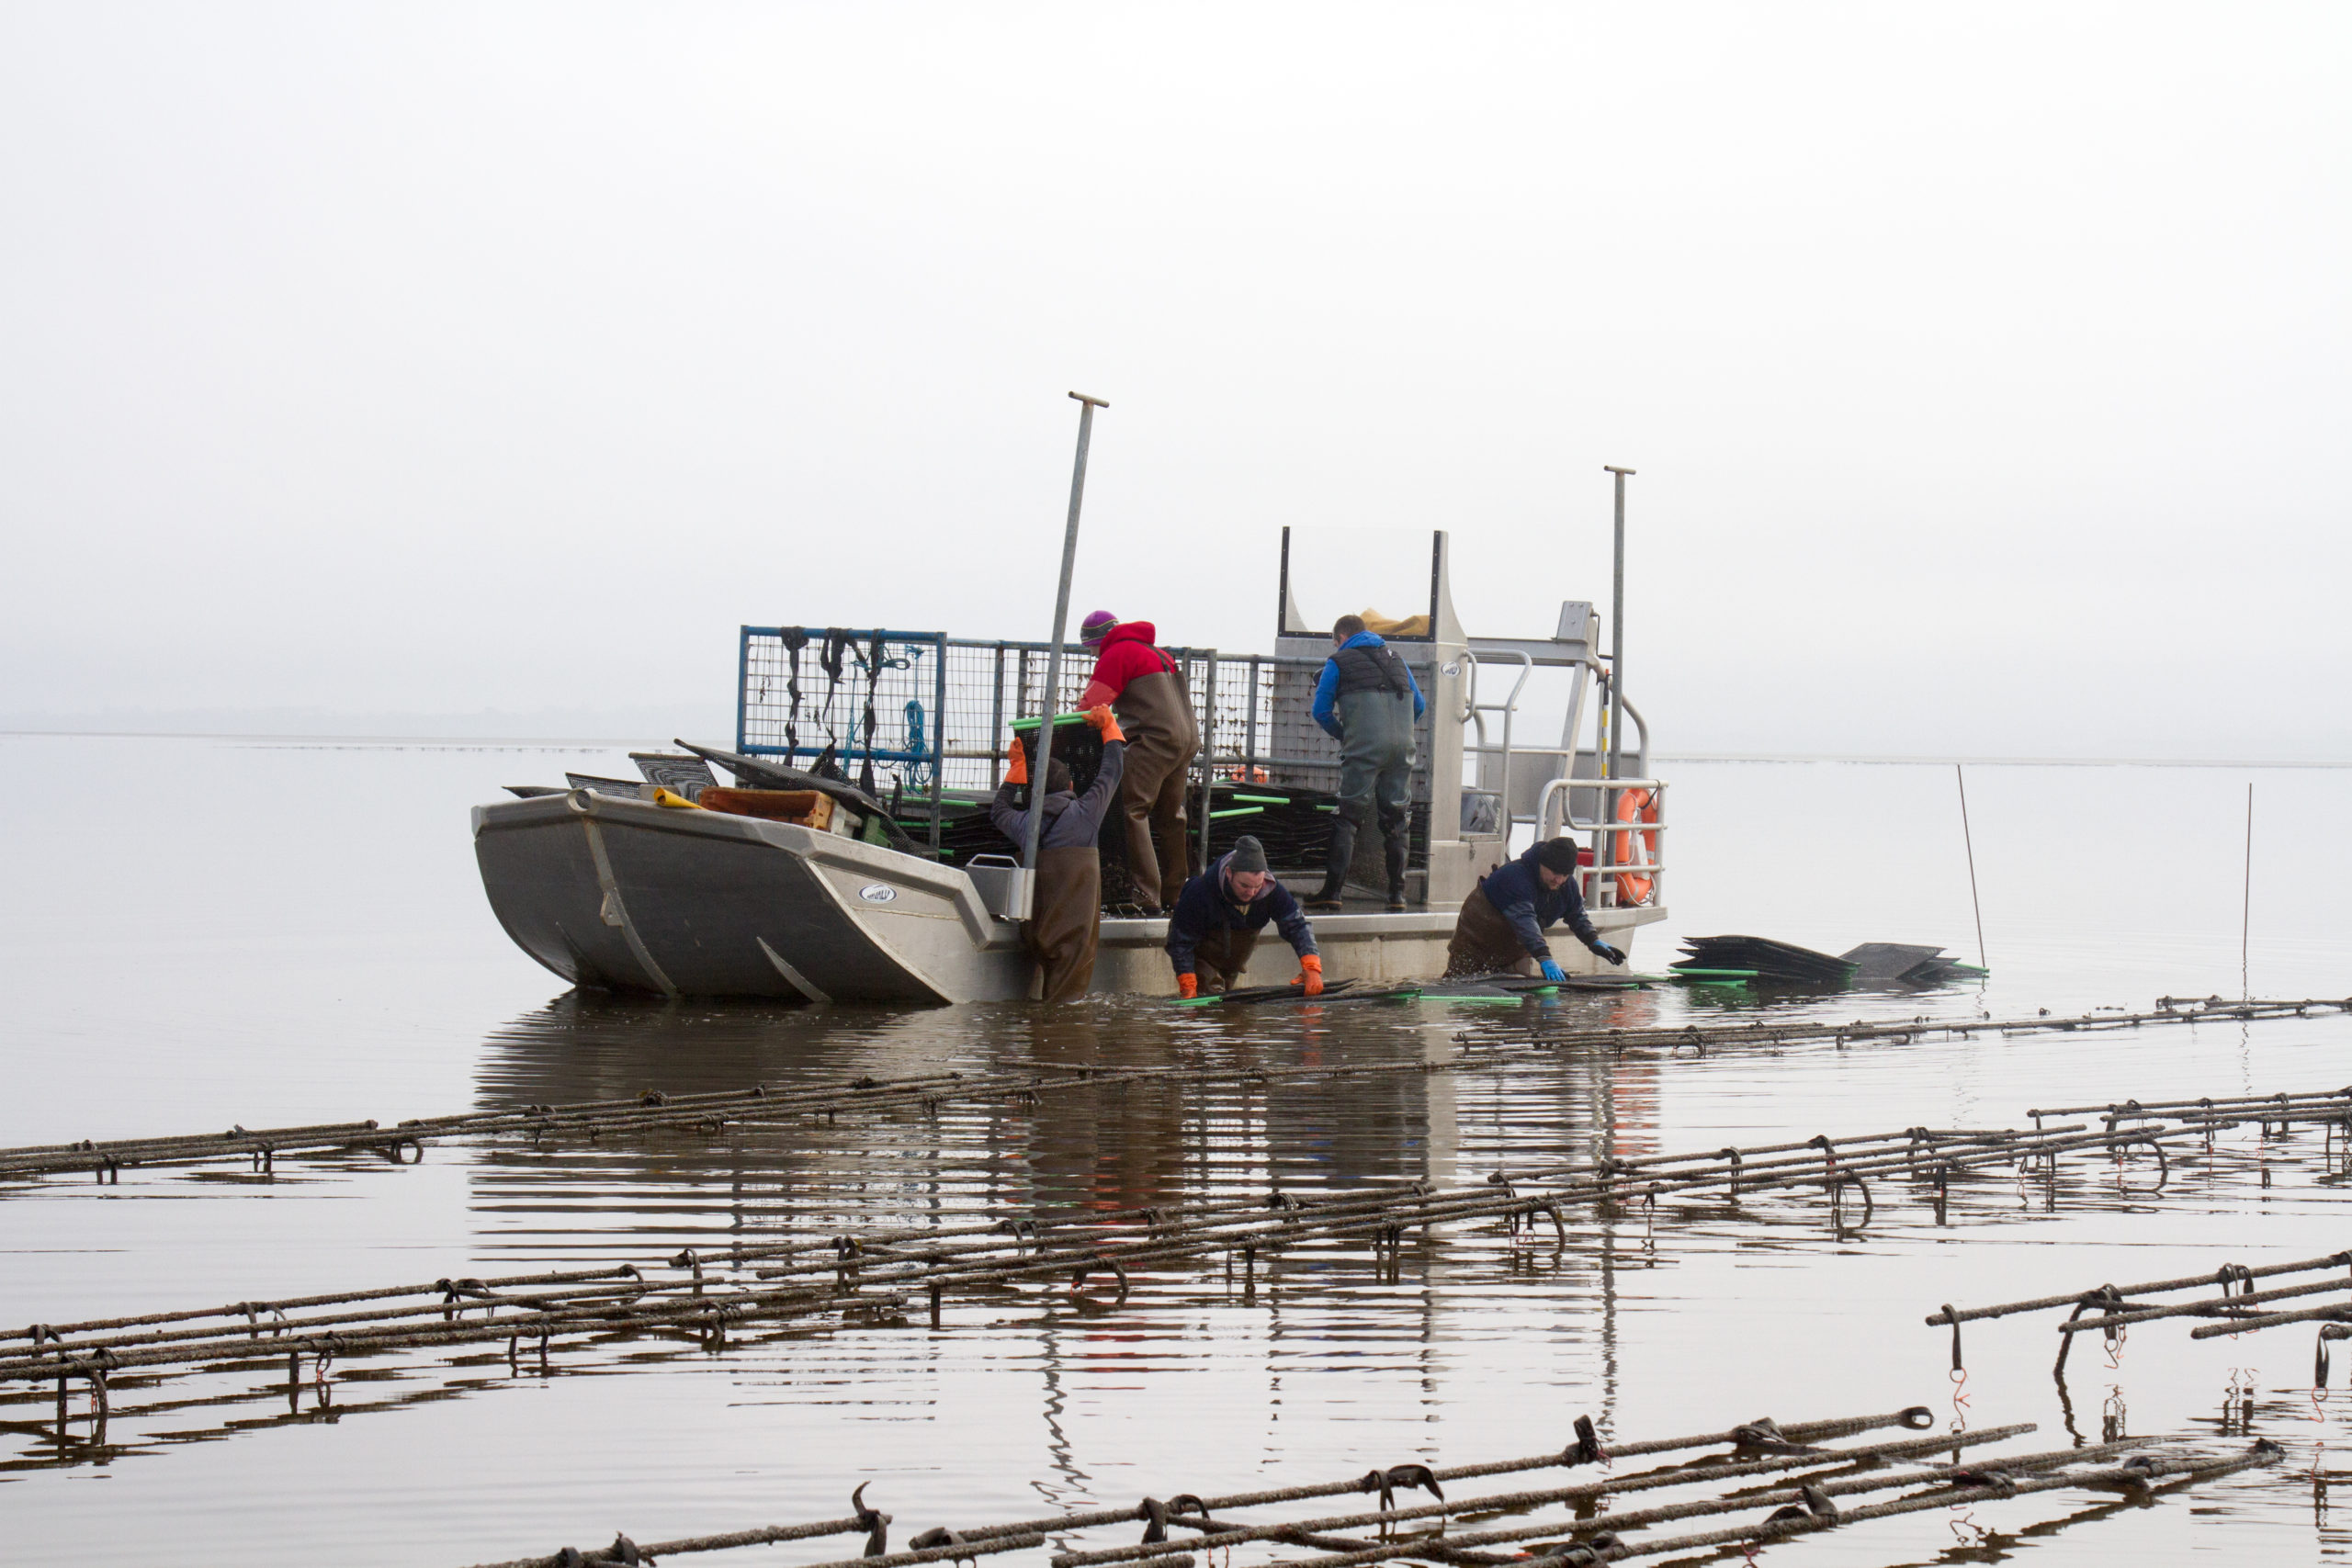 Cromane Bay Shellfish Team Taking Oysters for Grading on Boat